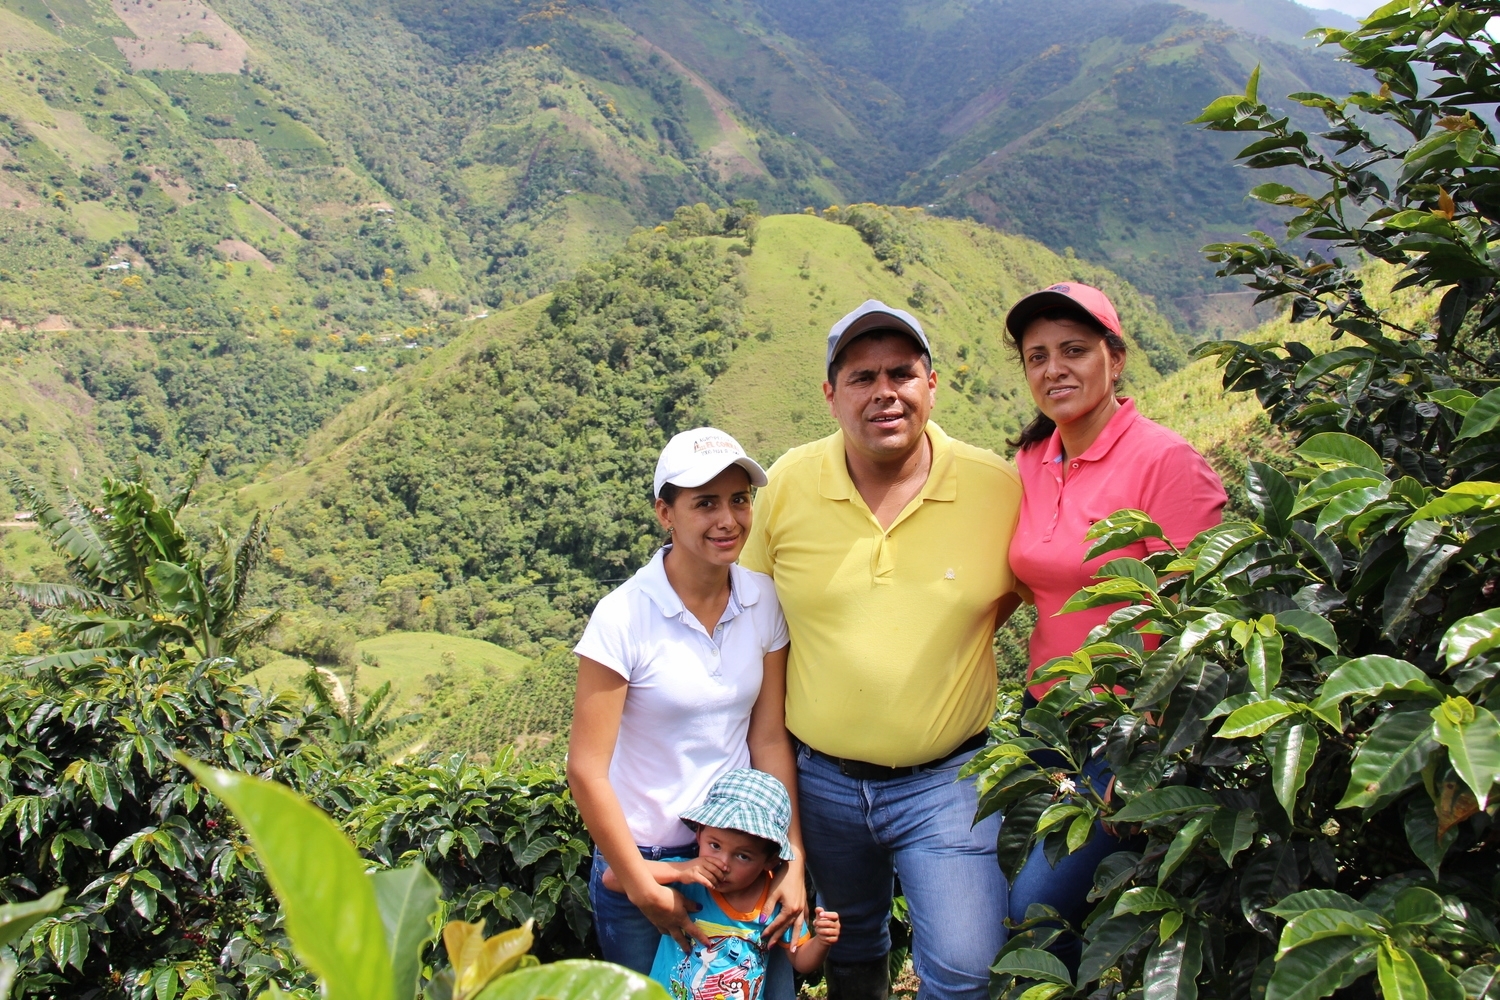 Astrid with her family at Finca Buenavista